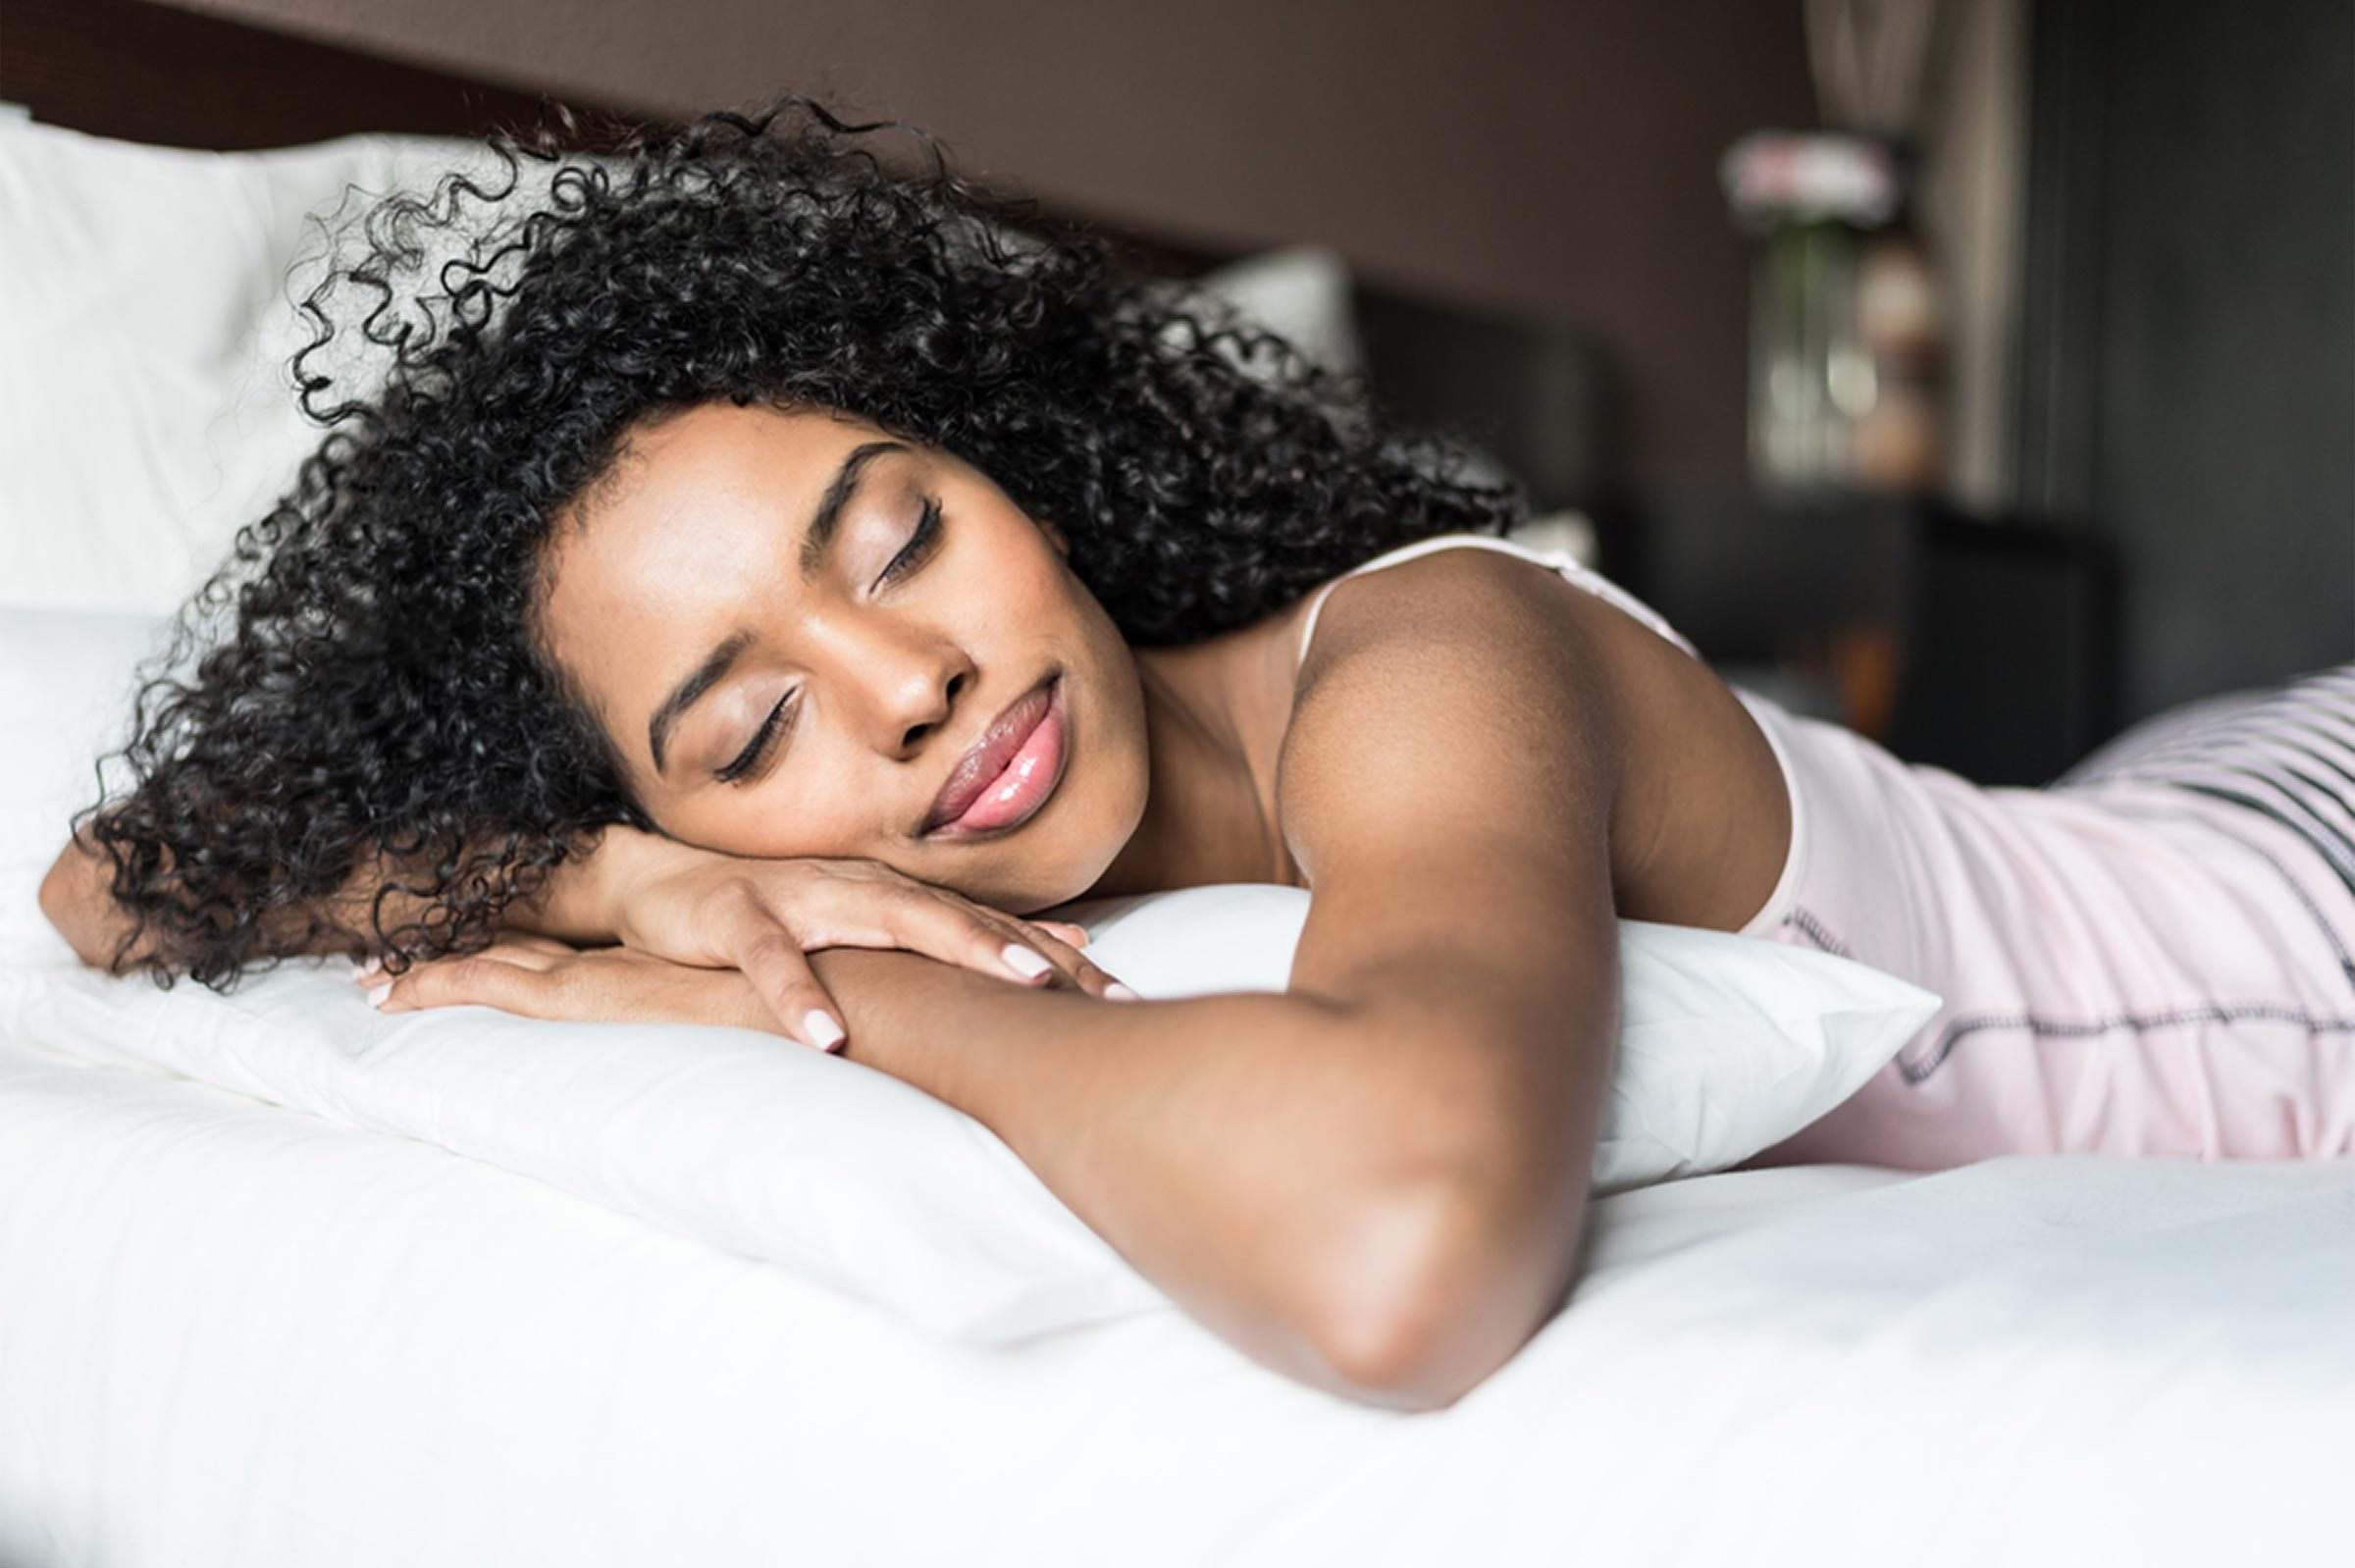 woman sleeping on stomach with smile on her face